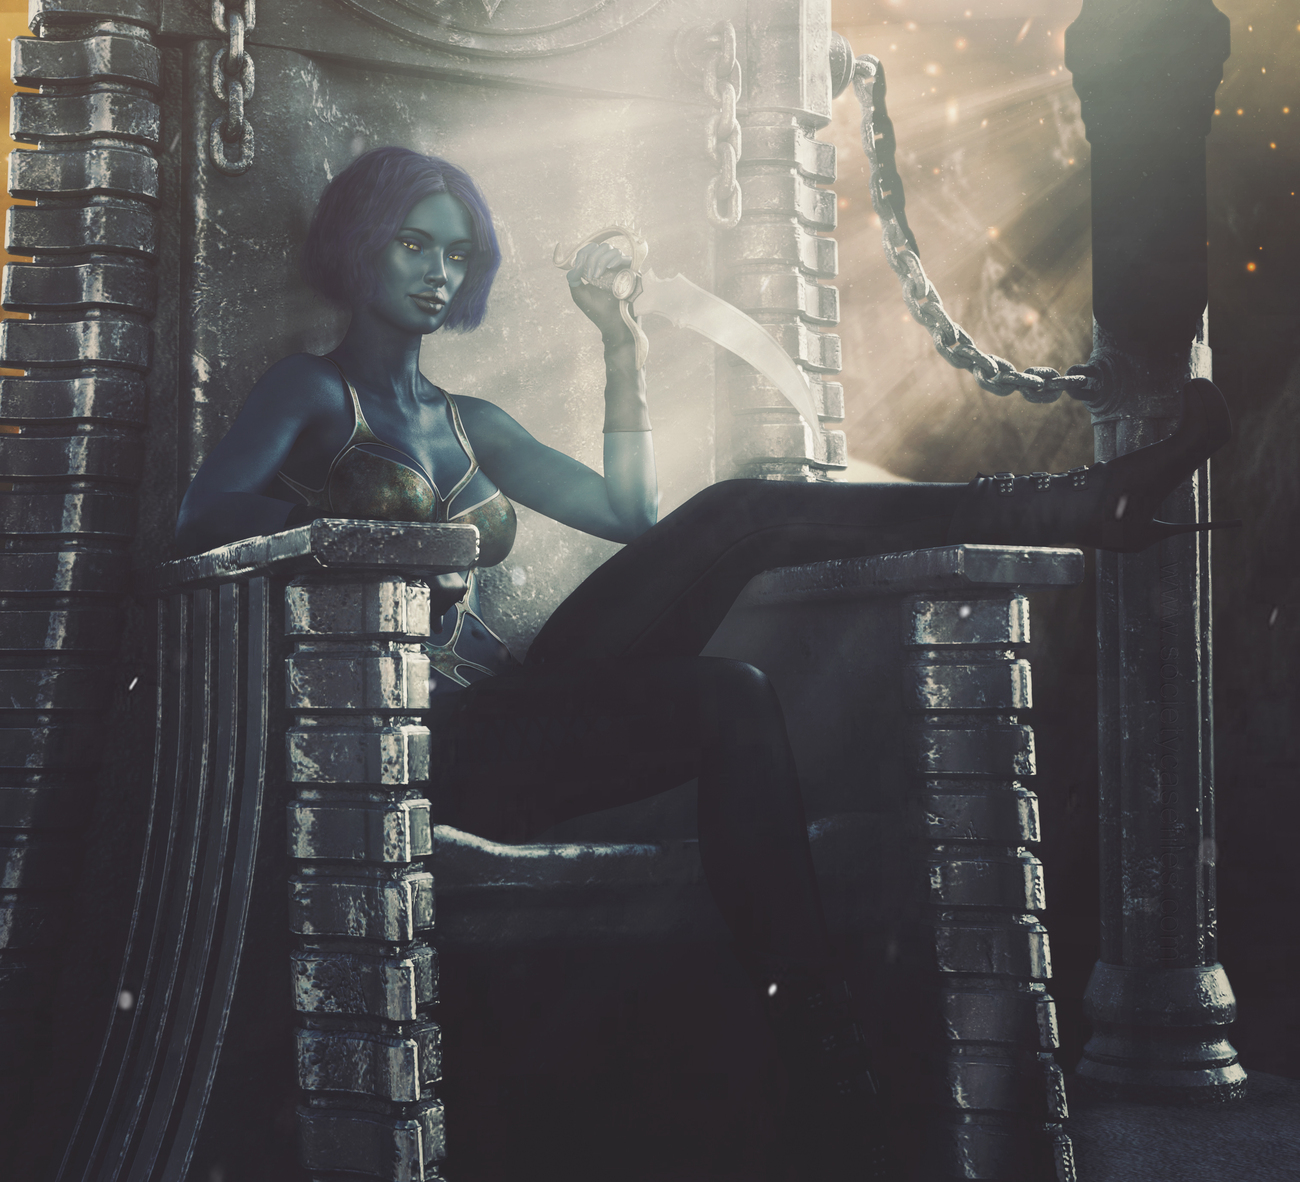 Throne of the Drow by darkrepast